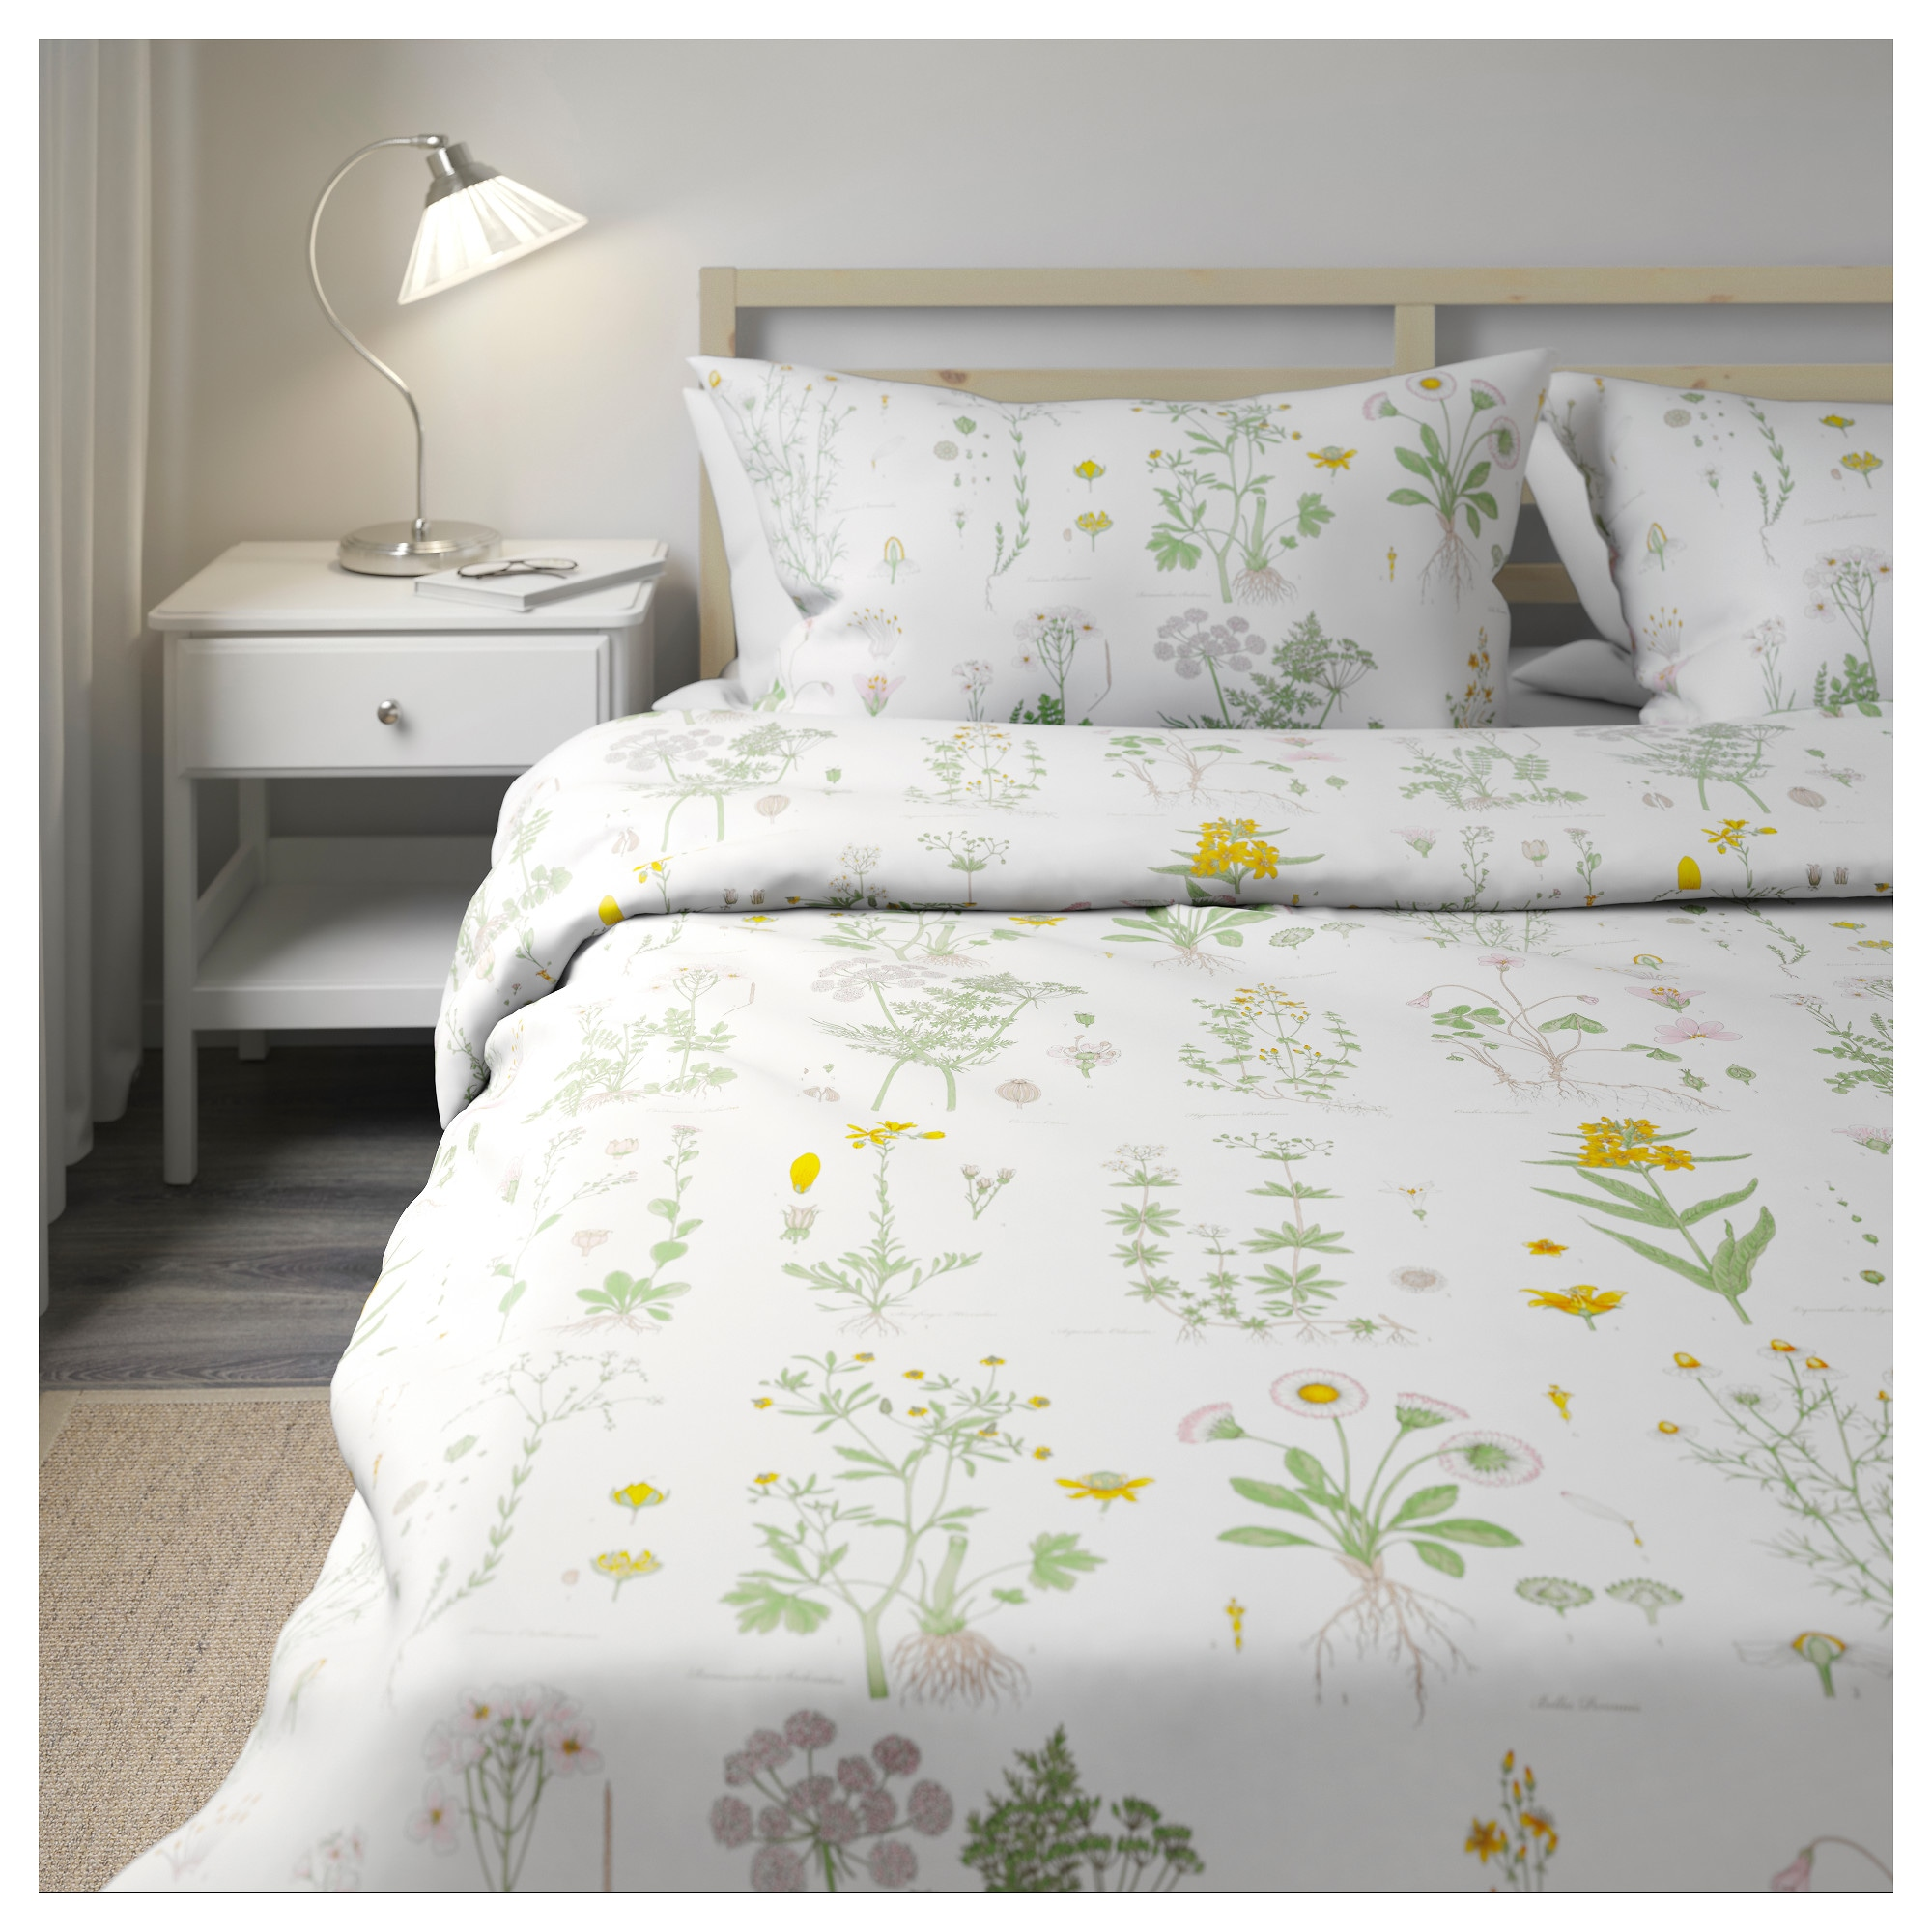 Design Ikea Bedding strandkrypa duvet cover and pillowcases fullqueen double doublequeen ikea